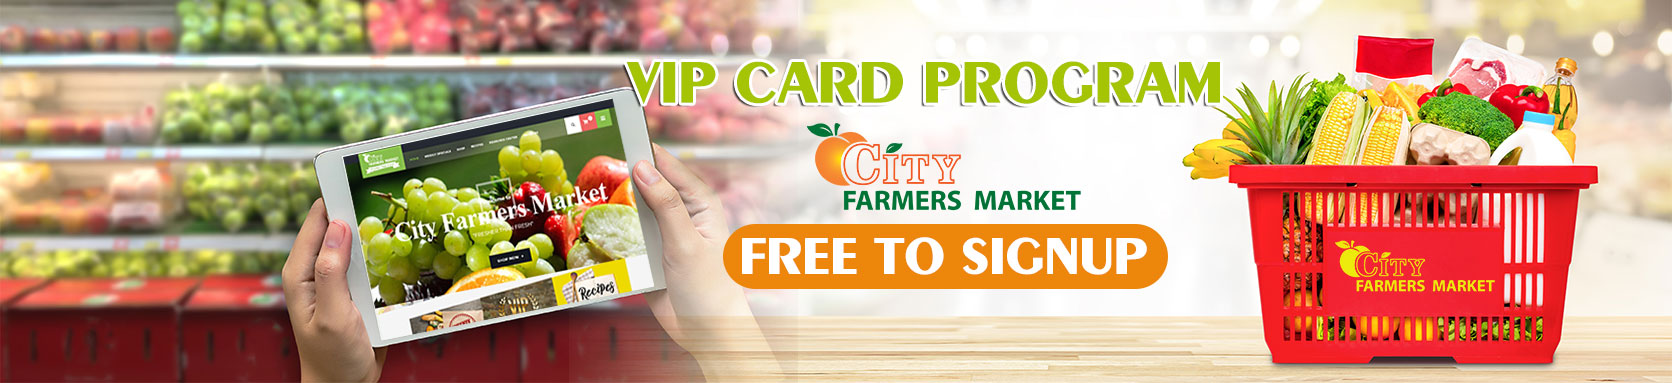 VIP Card – English City Farmers Market Atlanta Georgia VIP Card Program v1